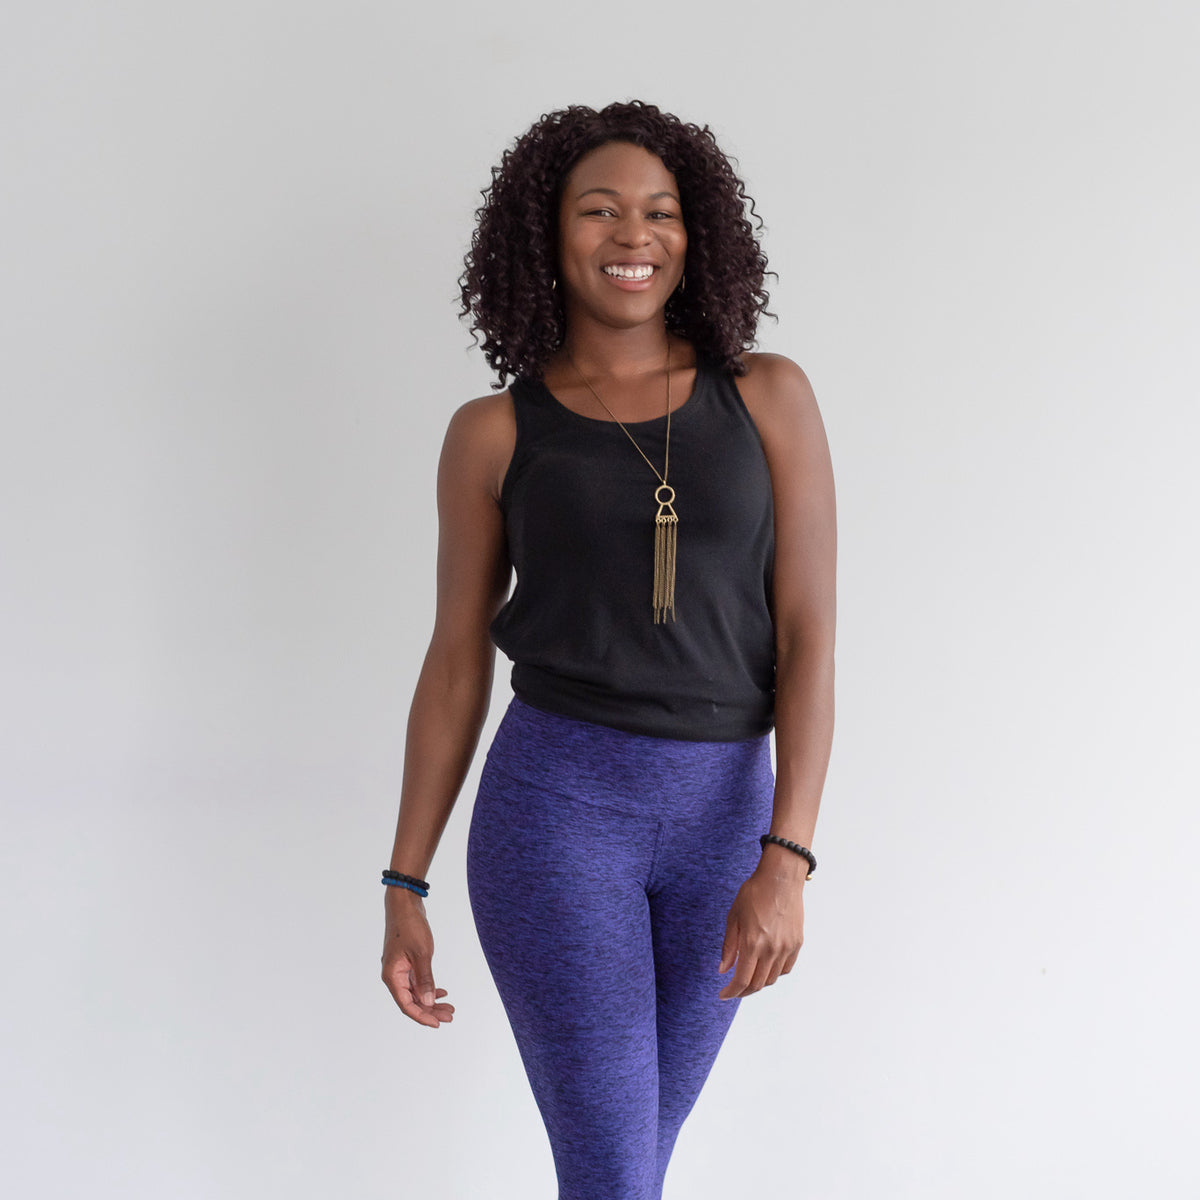 A model wearing a set of active wear by Buttercream Clothing.